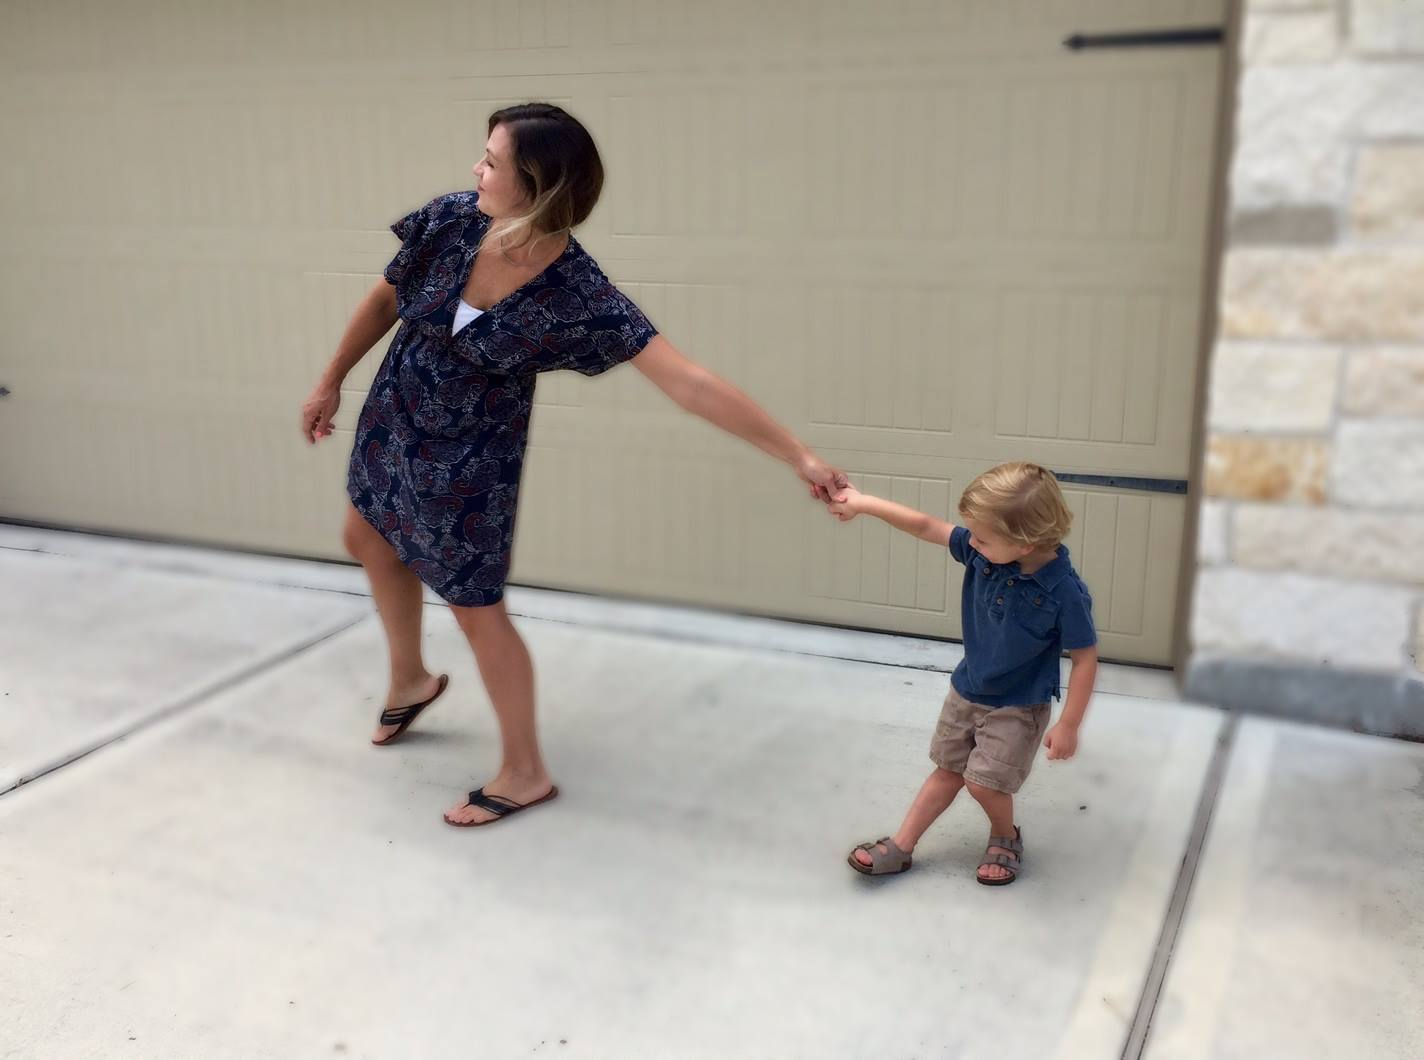 5 Reasons to Love Having a Hard-Headed Child | Baby Chick